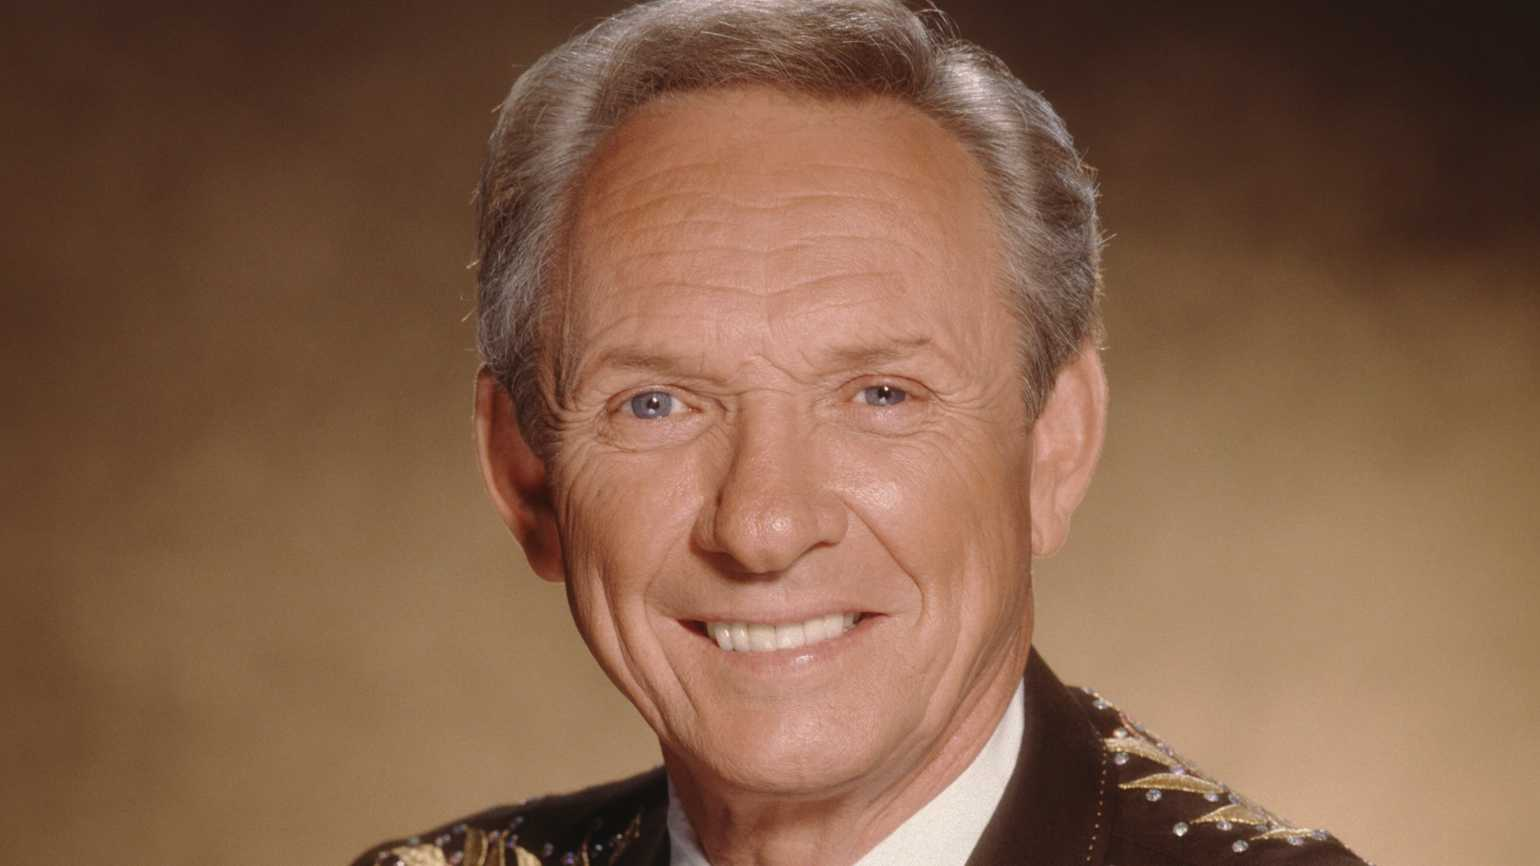 Country music legend Mel Tillis